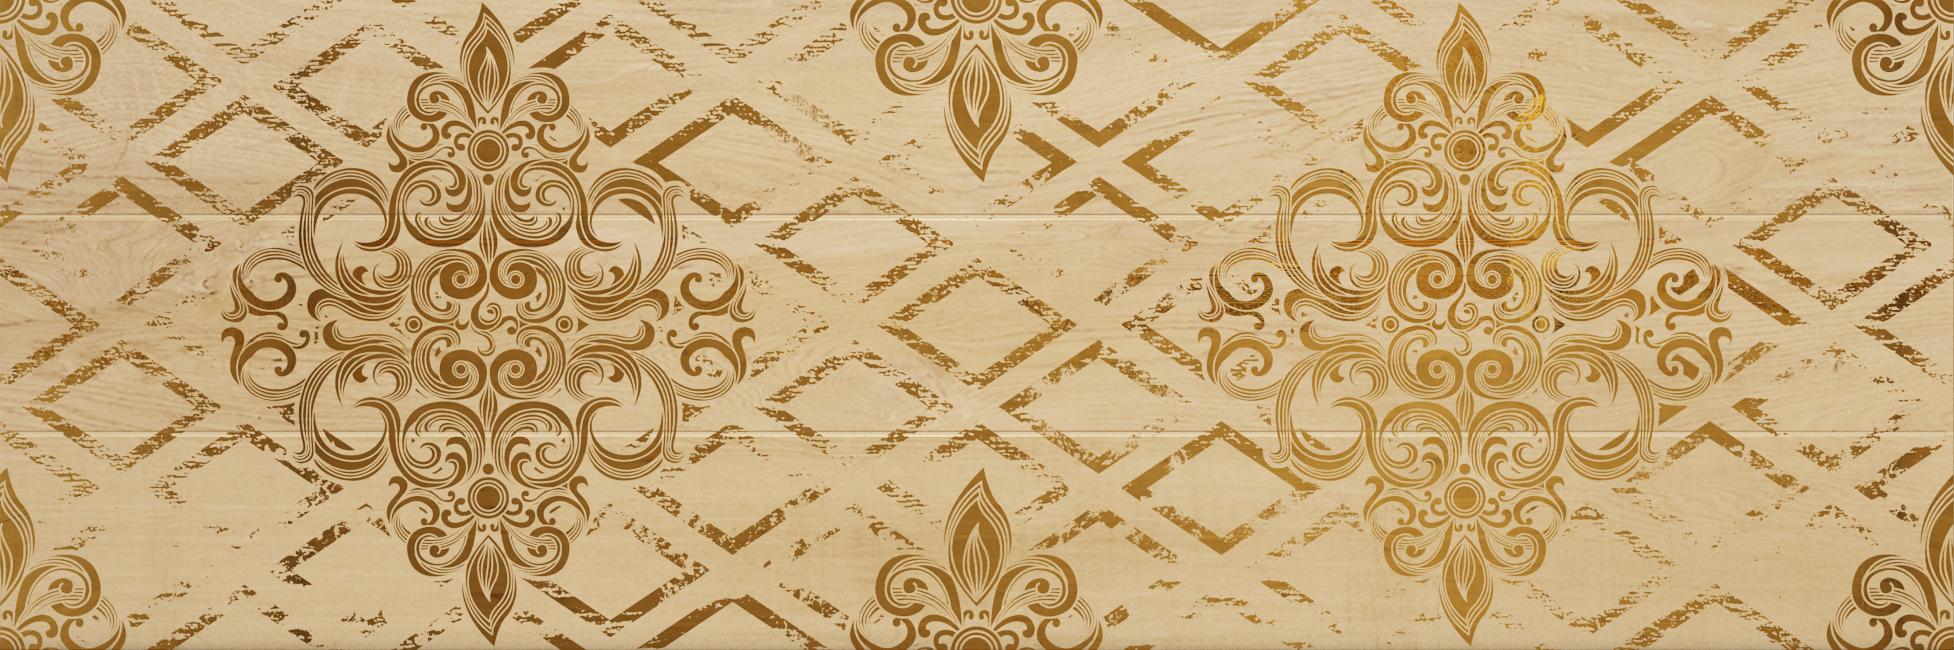 Imprint decor 600x200_7b9fbeaf683db7c75e503c6587eac030